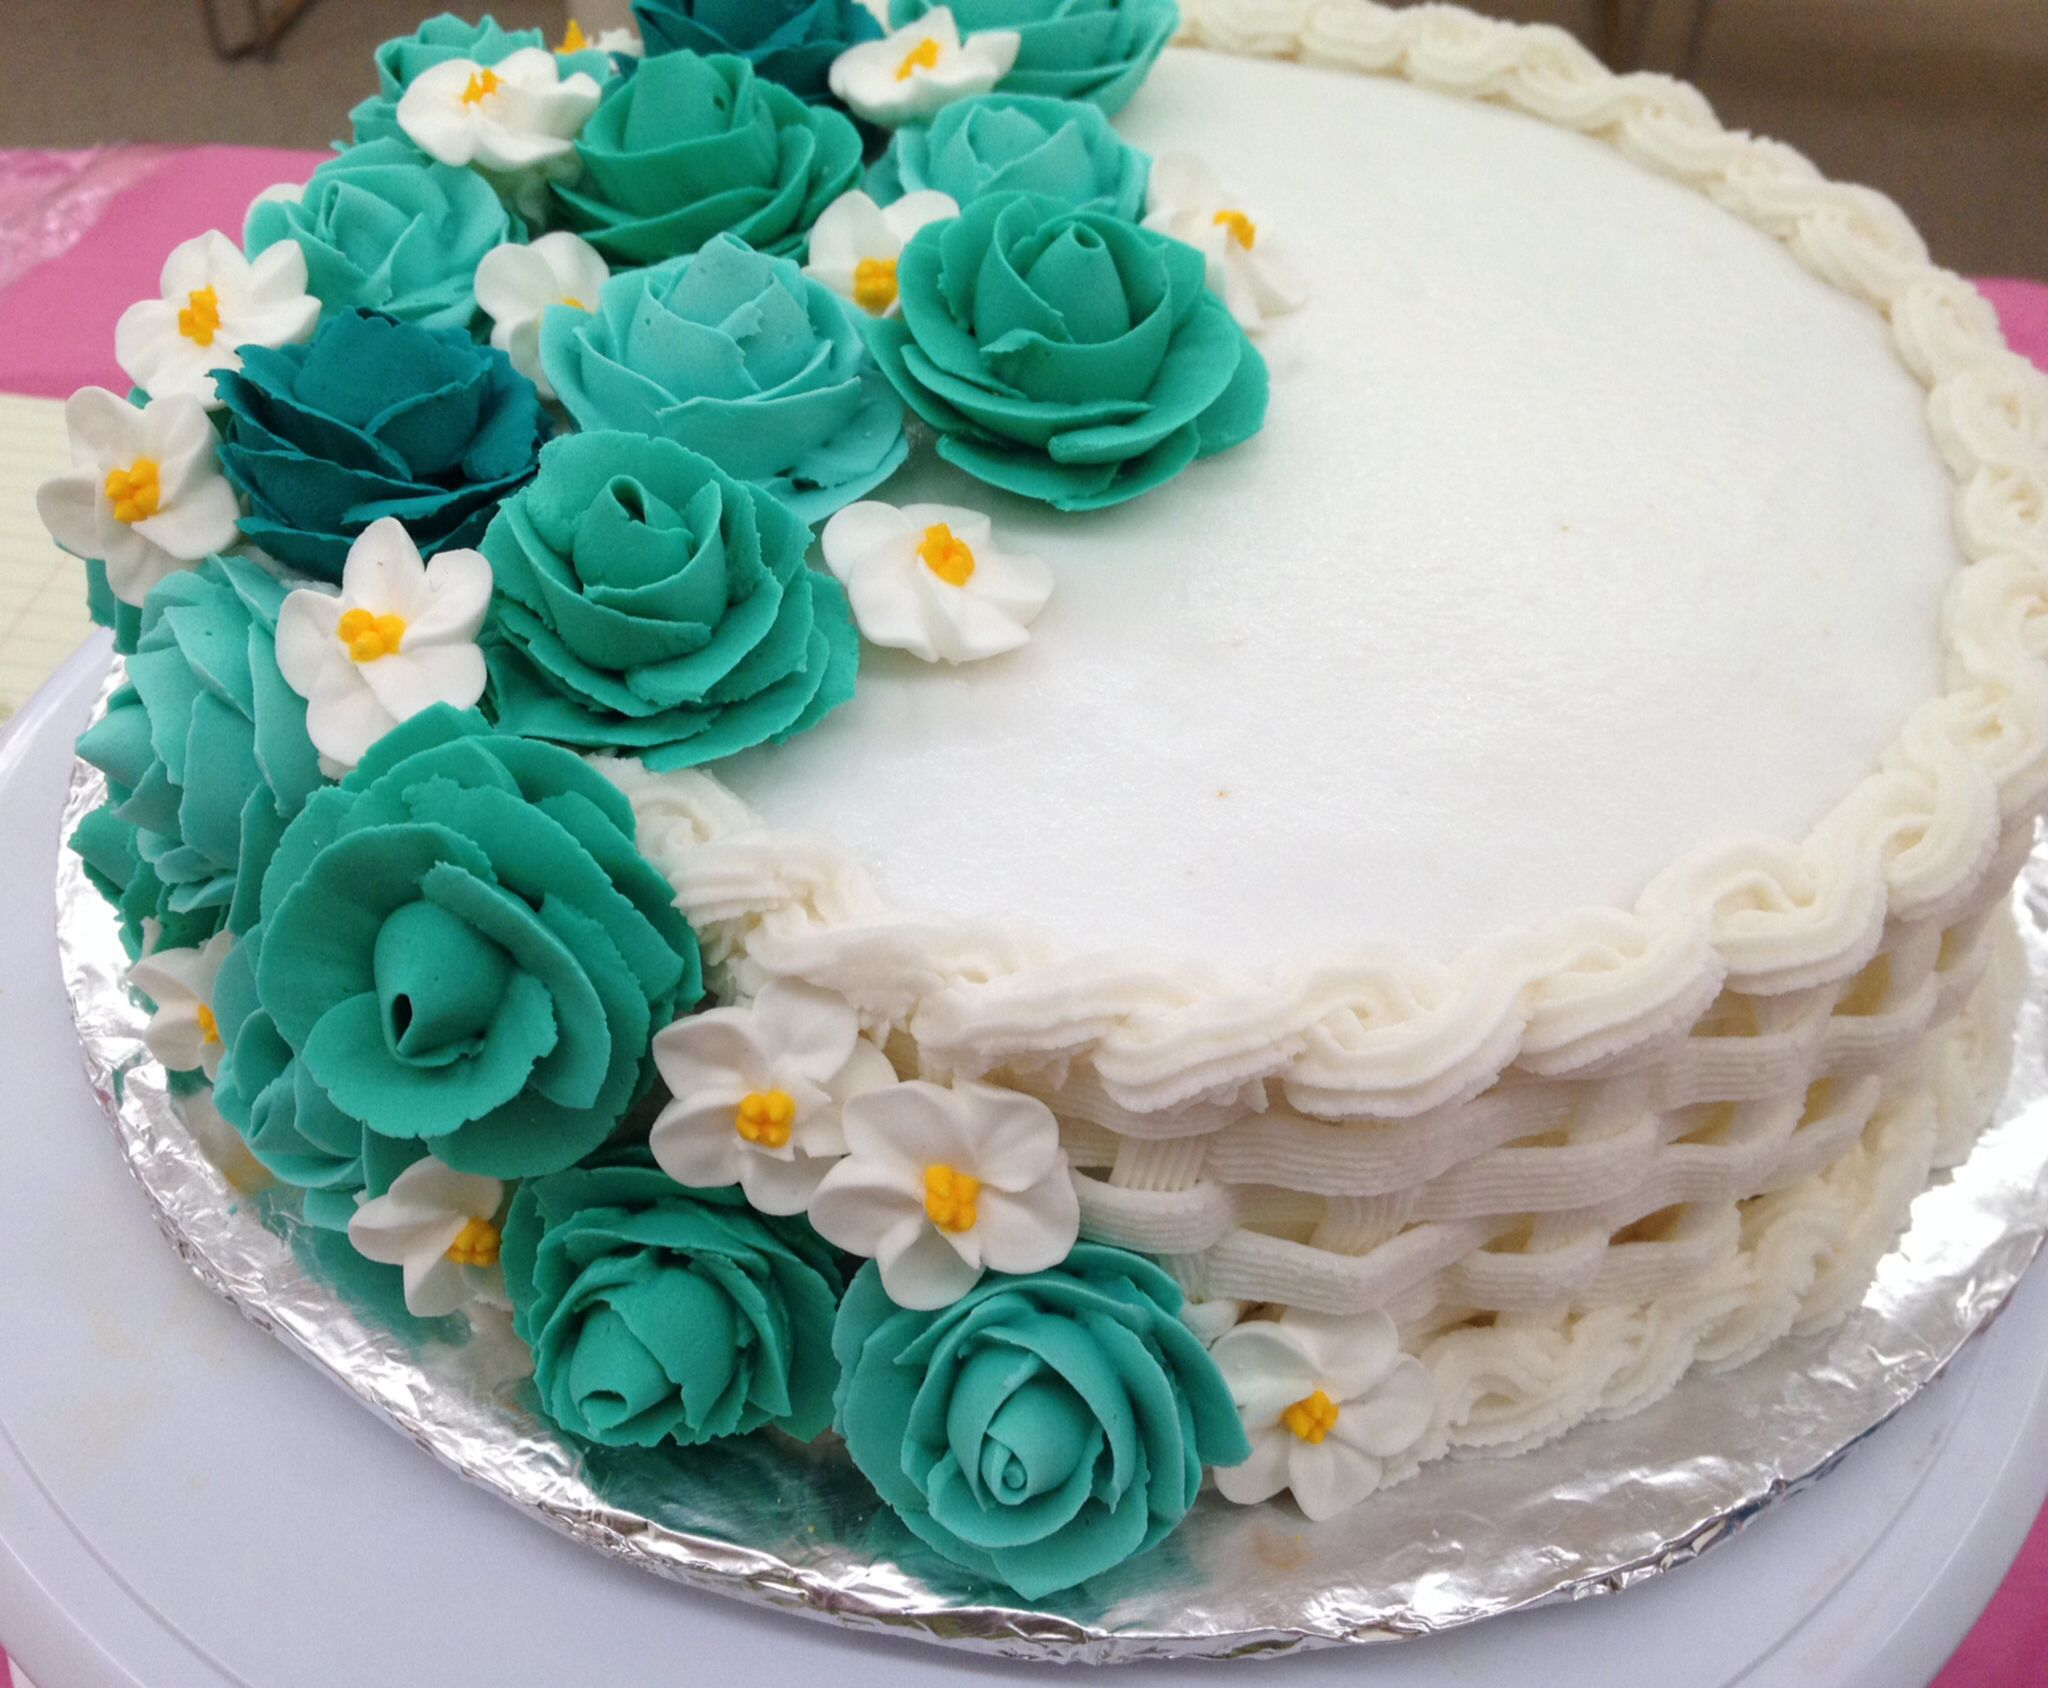 Cake Decoration Flowers Recipe : Wilton course 2 cake completed! Lemon cake with raspberry ...